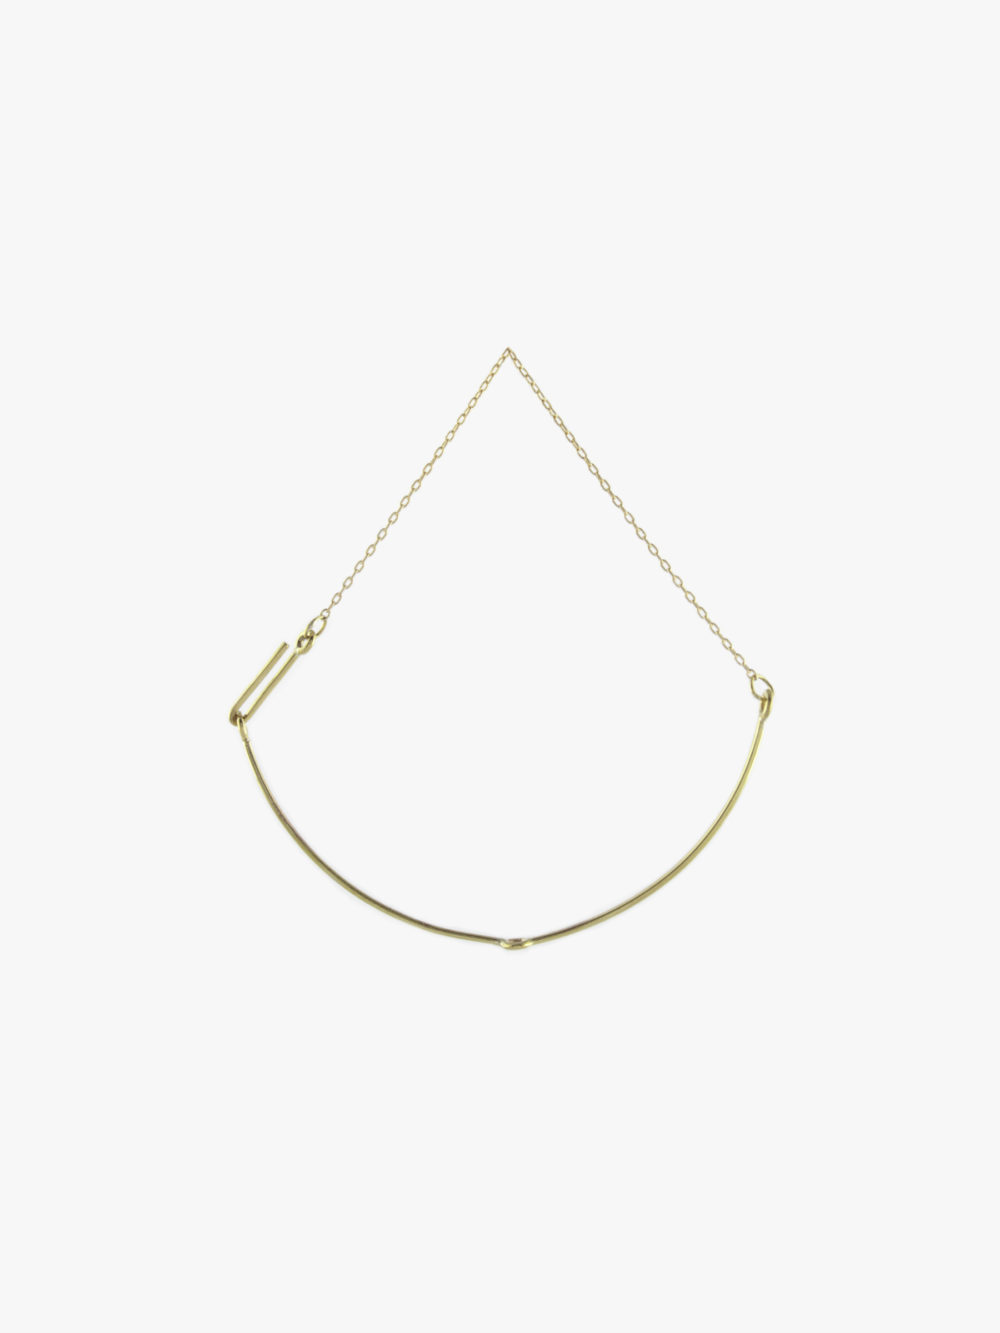 Minimal Tiny bracelet by Depart - available at utopiast.com